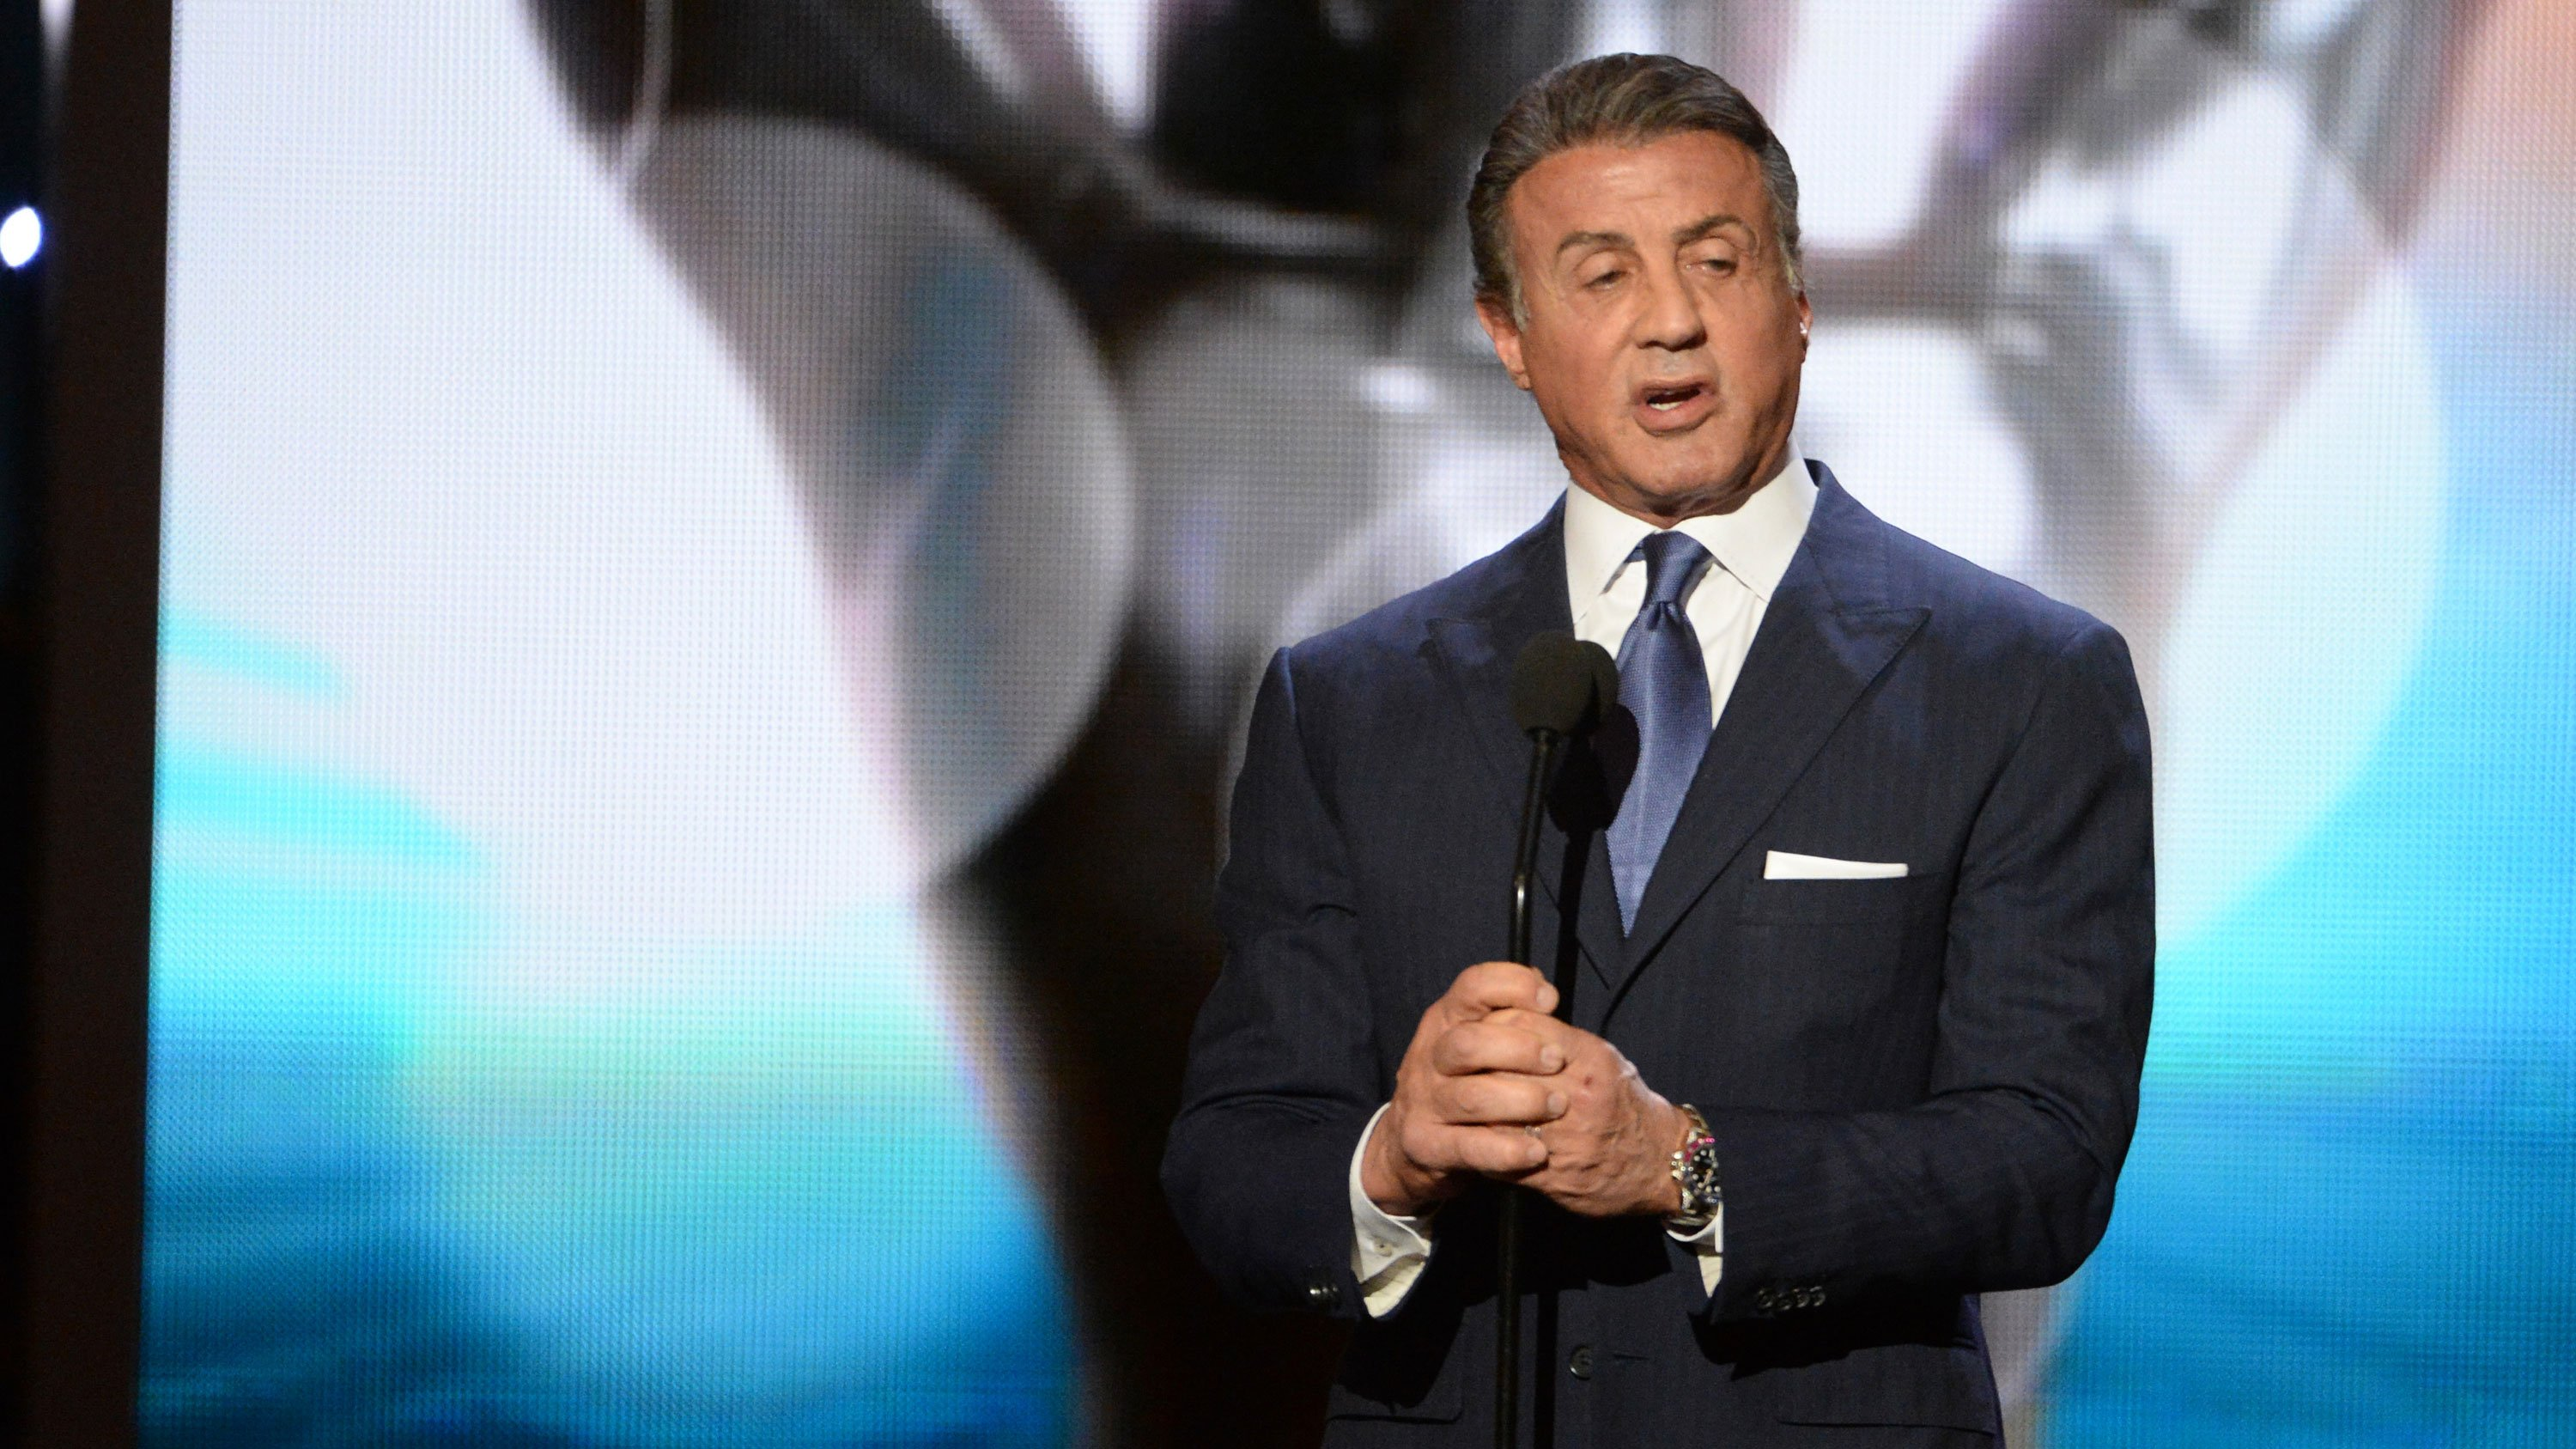 Sylvester Stallone speaks on stage at the 47th NAACP Image Awards at the Pasadena Civic Auditorium on Friday, Feb. 5, 2016, in Pasadena, Calif. (Photo by Phil McCarten/Invision/AP)